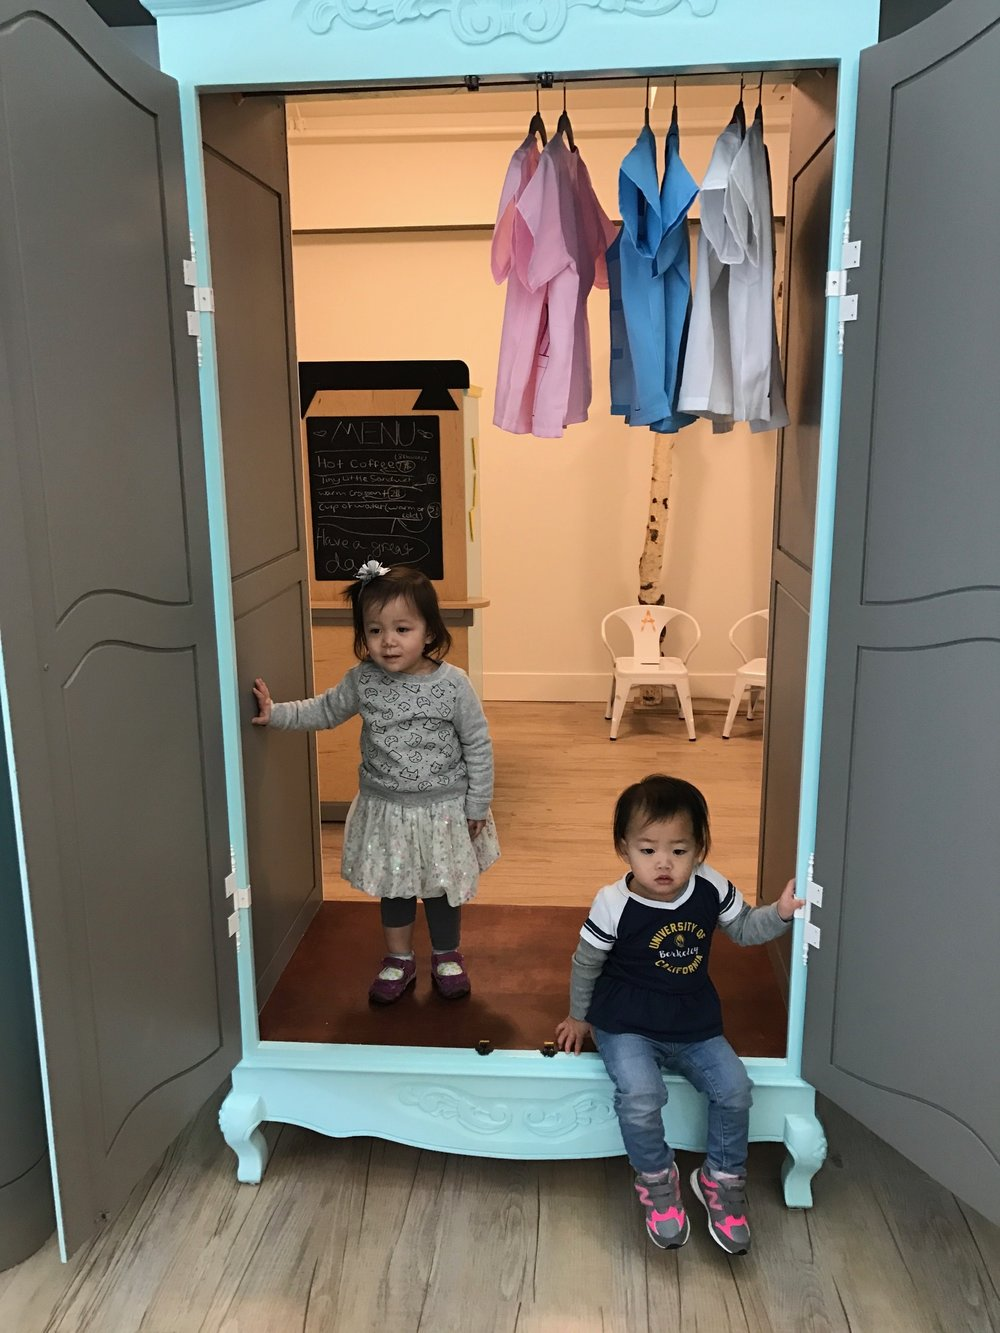 hanging out in the armoire